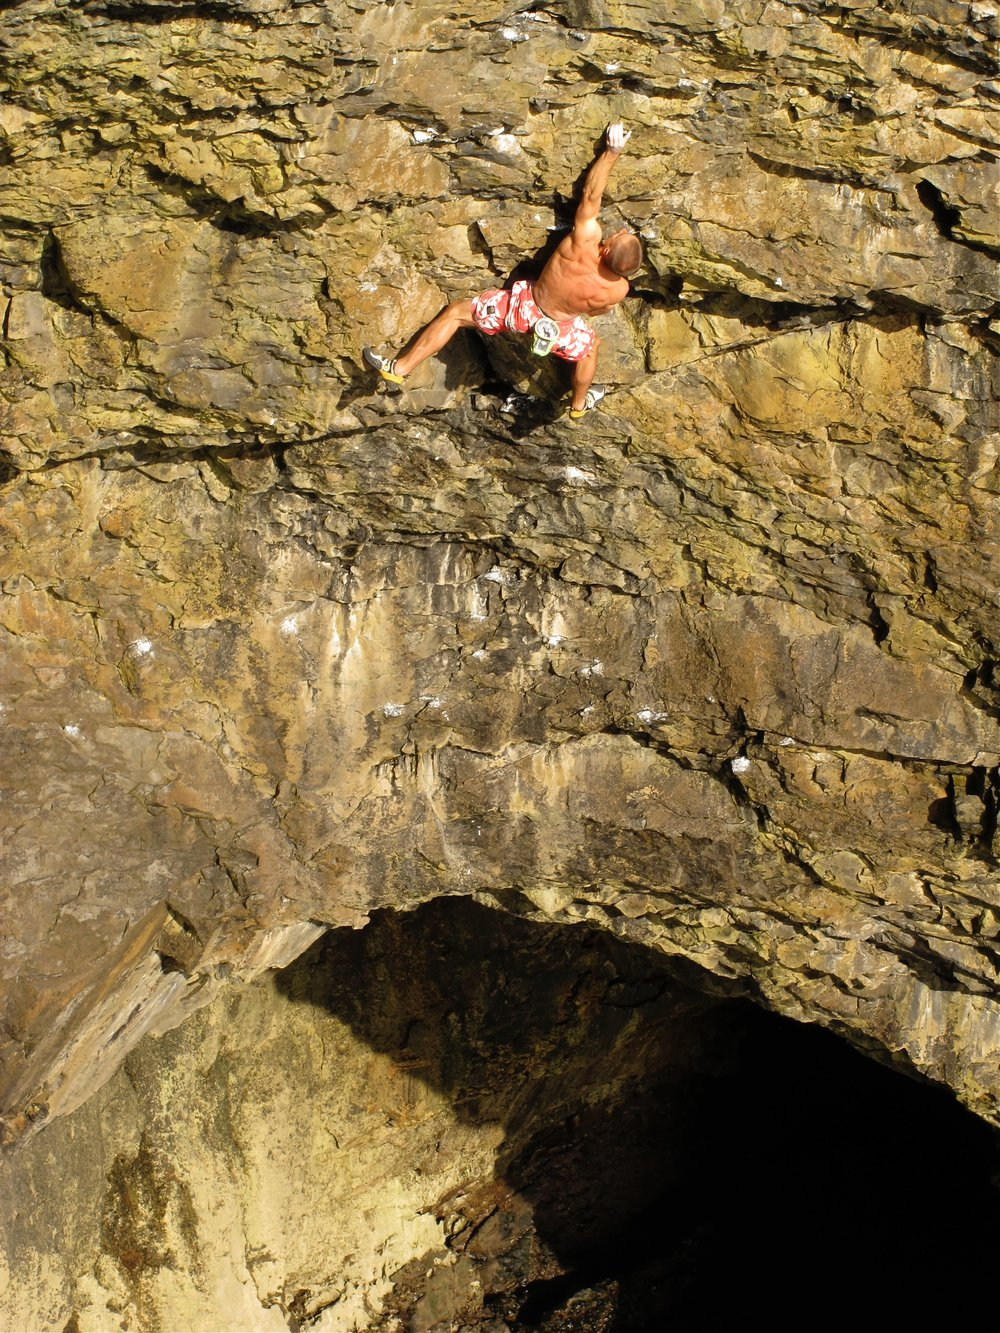 Hydrotherapy 8a+ S2, Pembroke. Photo: Liam Cook